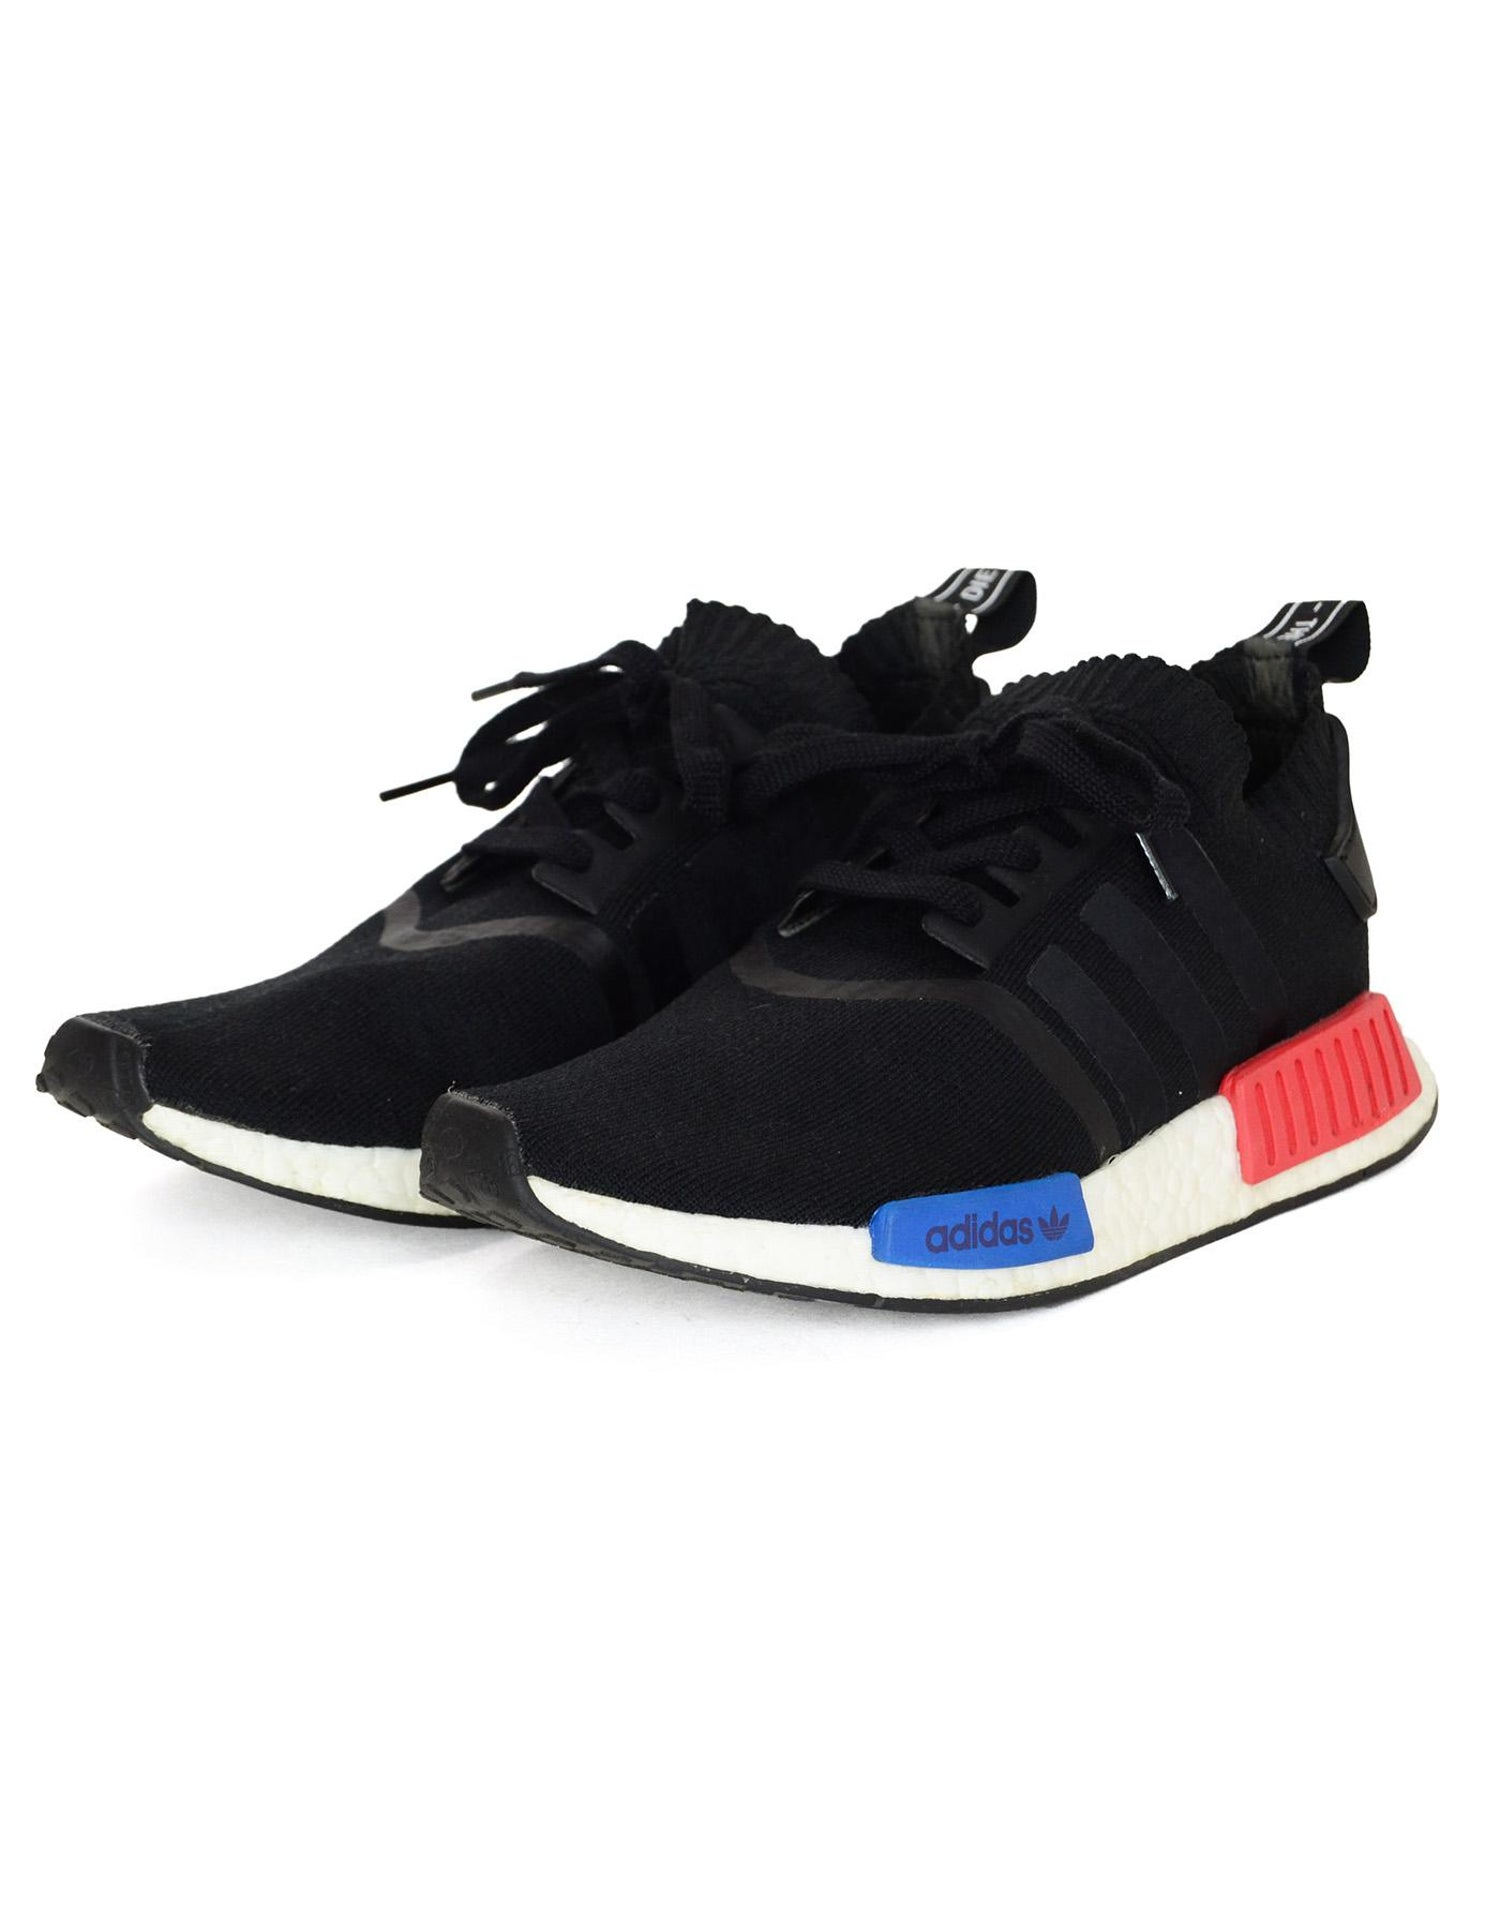 5e9e04aeb5291 Adidas Limited Edition Black Red Blue NMD R1 PK OG 2017 Release sz Men s 7  For Sale at 1stdibs